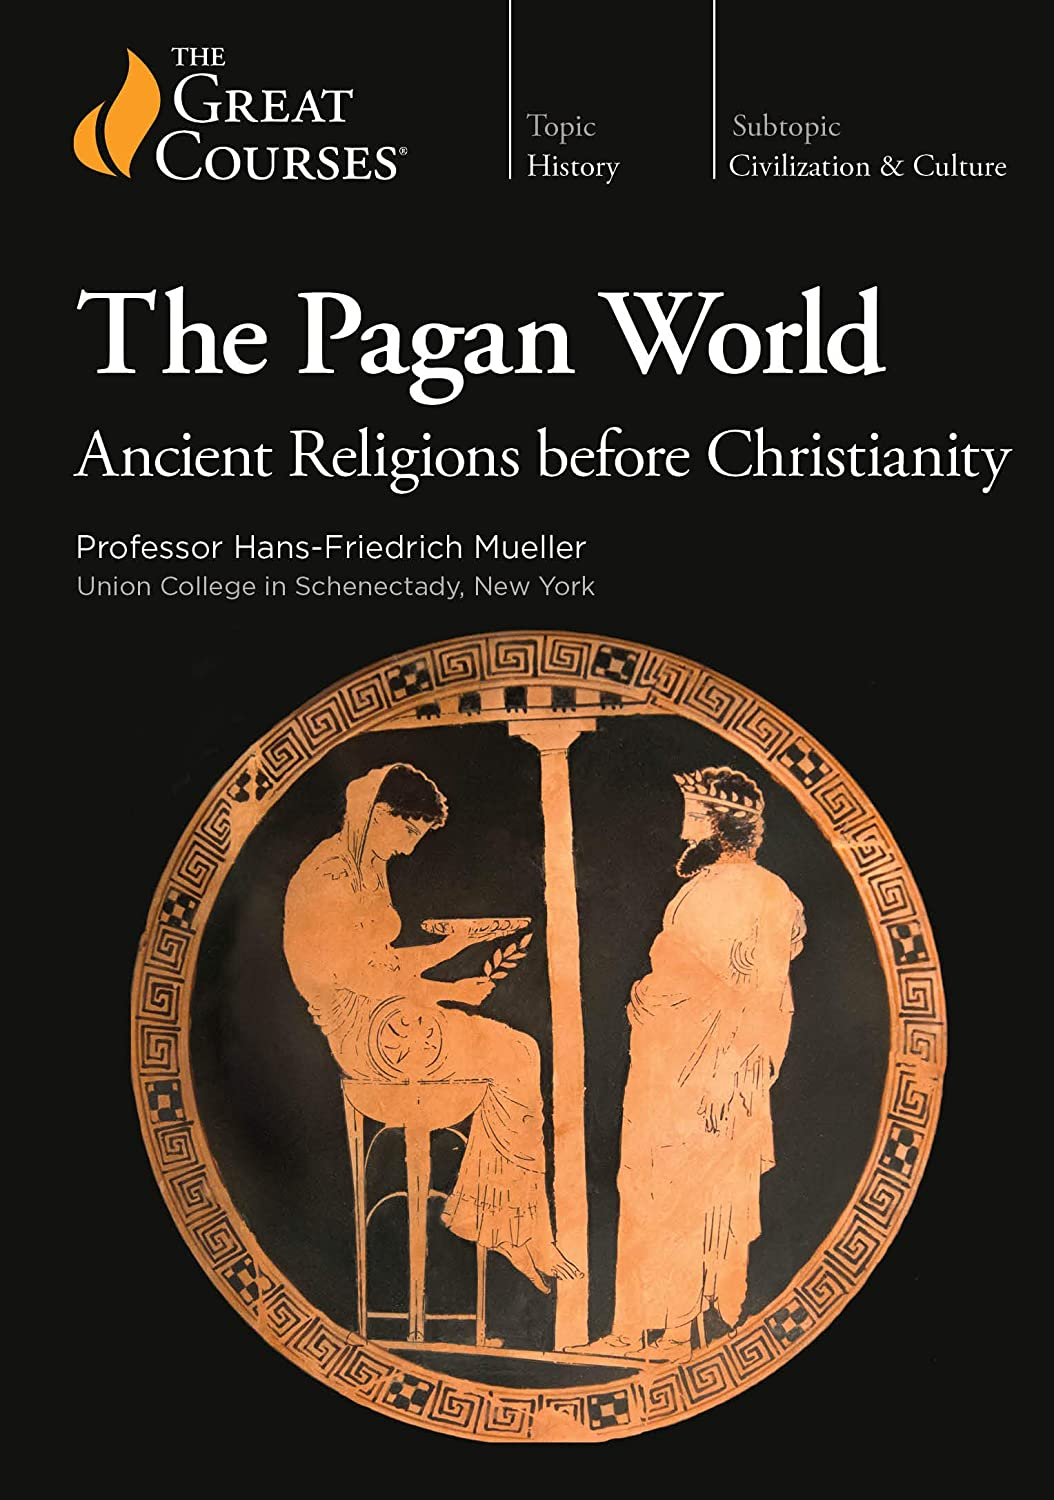 The Pagan world ancient religions before Christianity